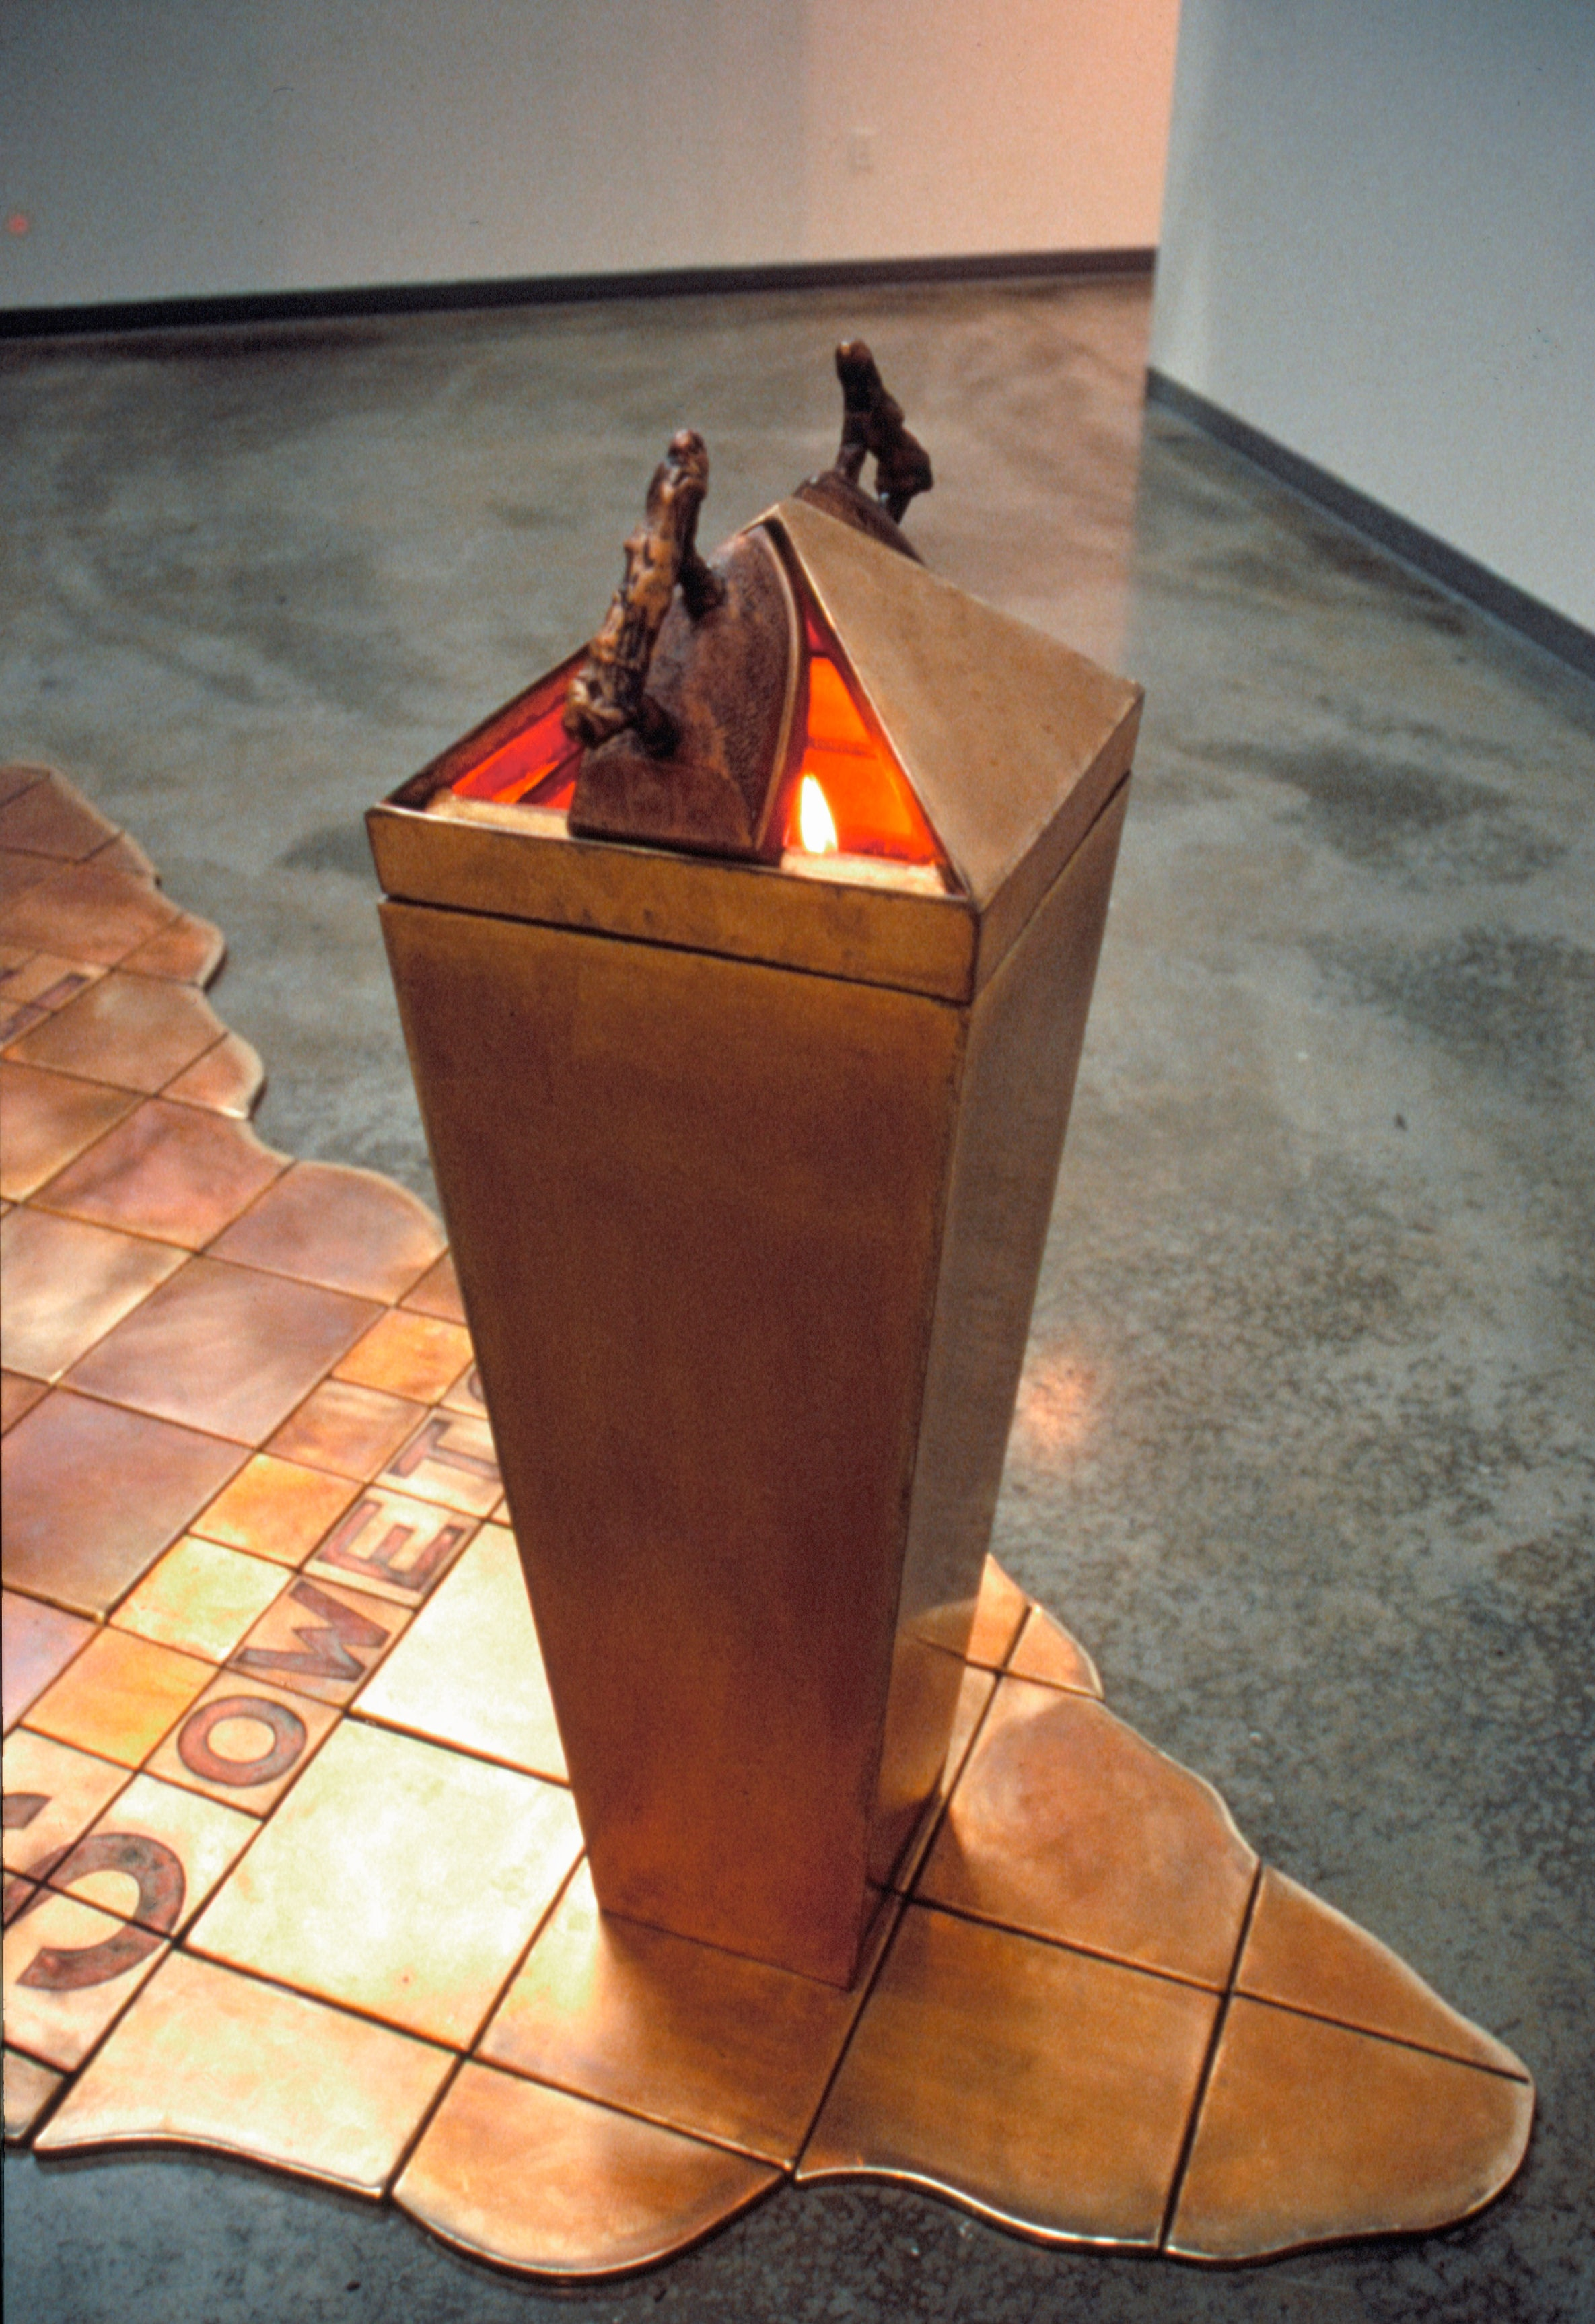 Fire for Biko (Integral Pedestal with Iron Elements) - 1990,  Fabricated Bronze with Patina - Integral Flame